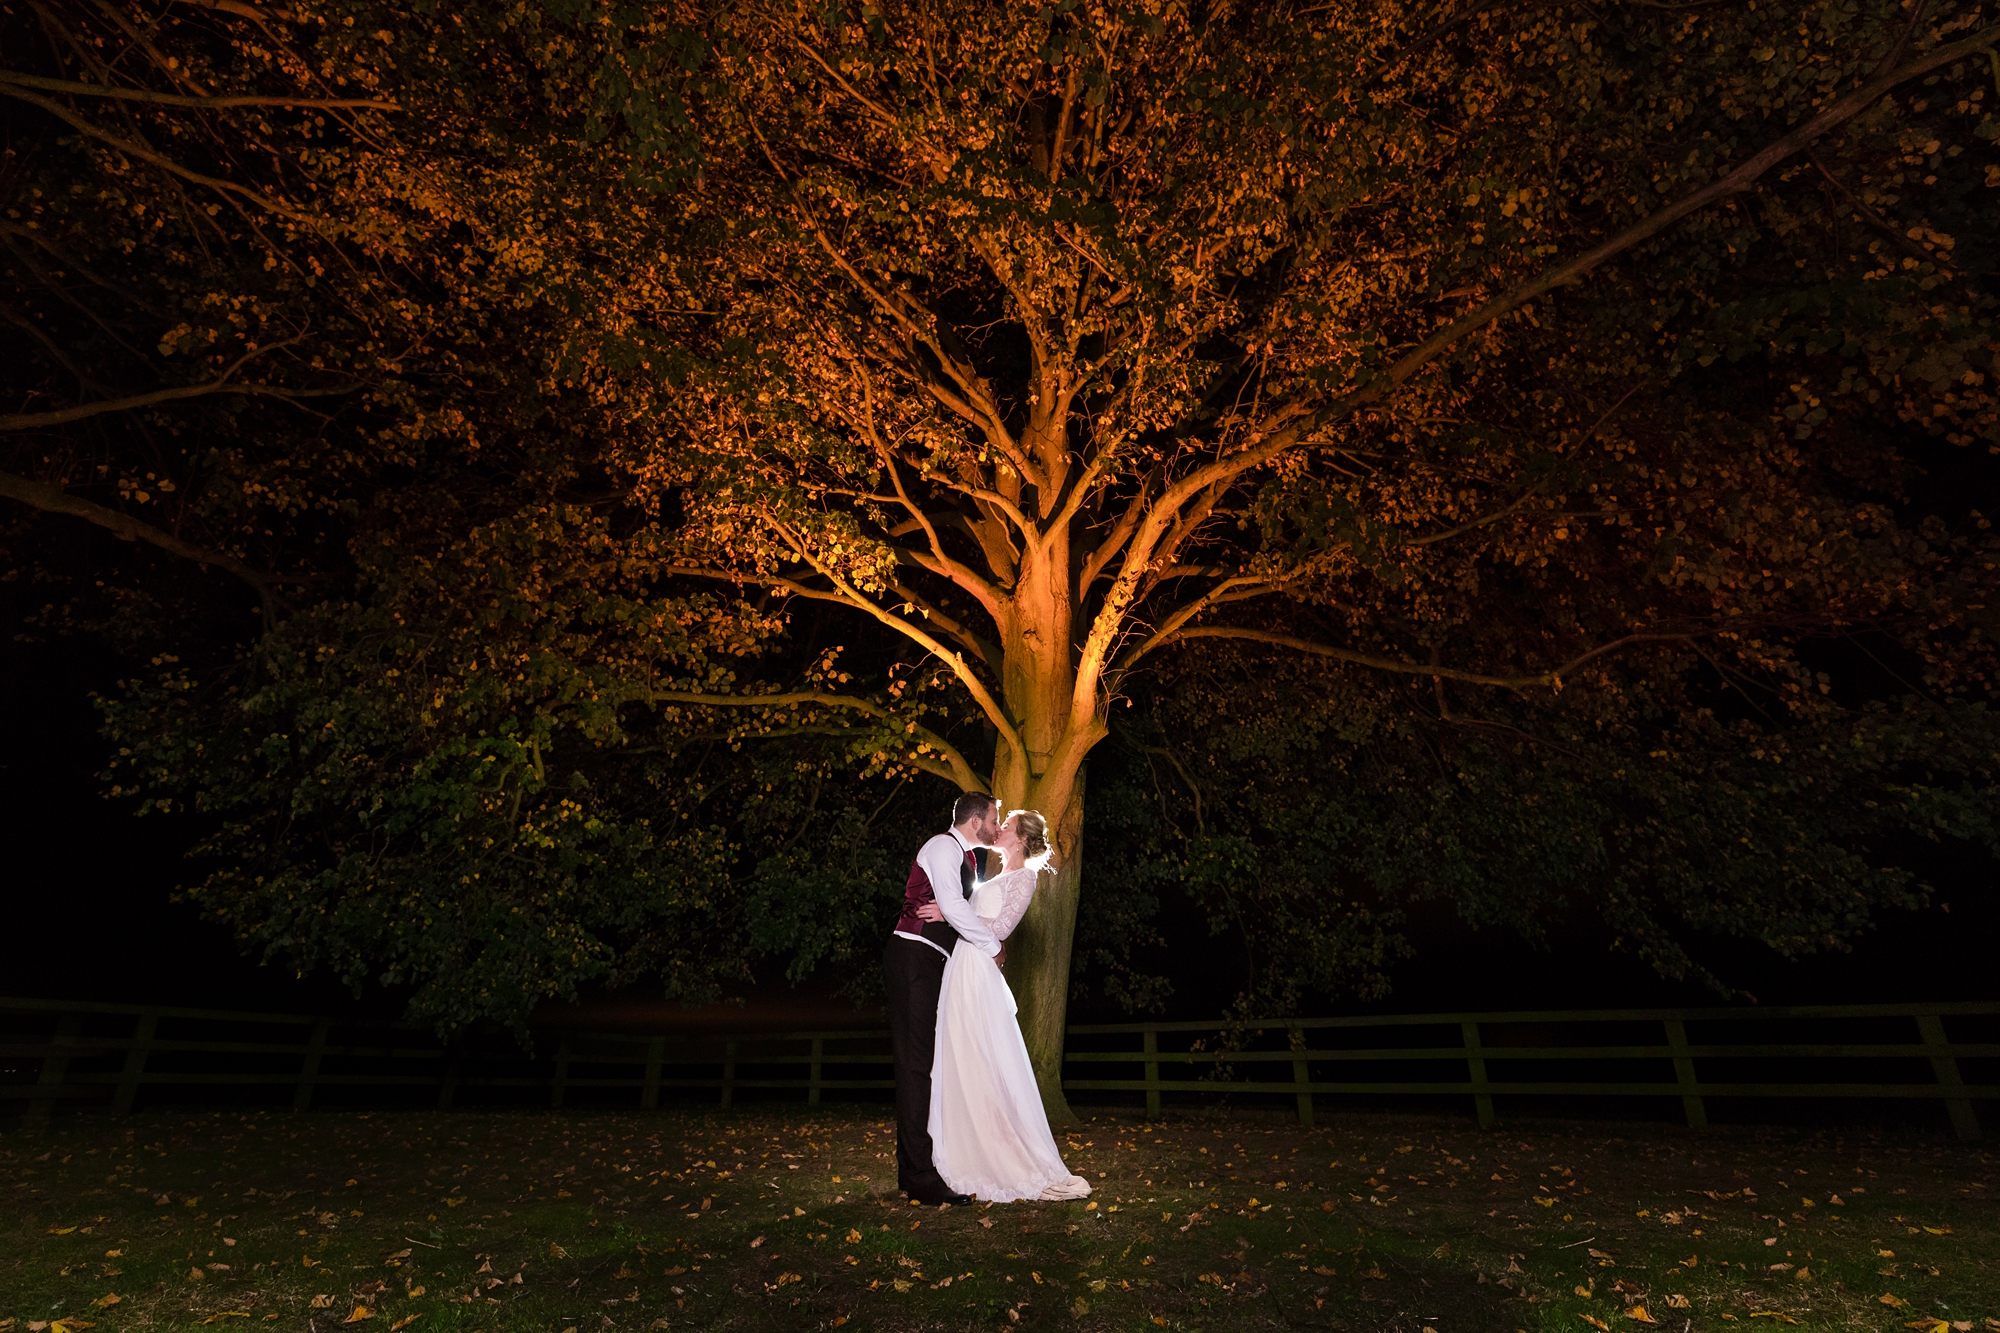 Bride and groom kiss under tree lit by